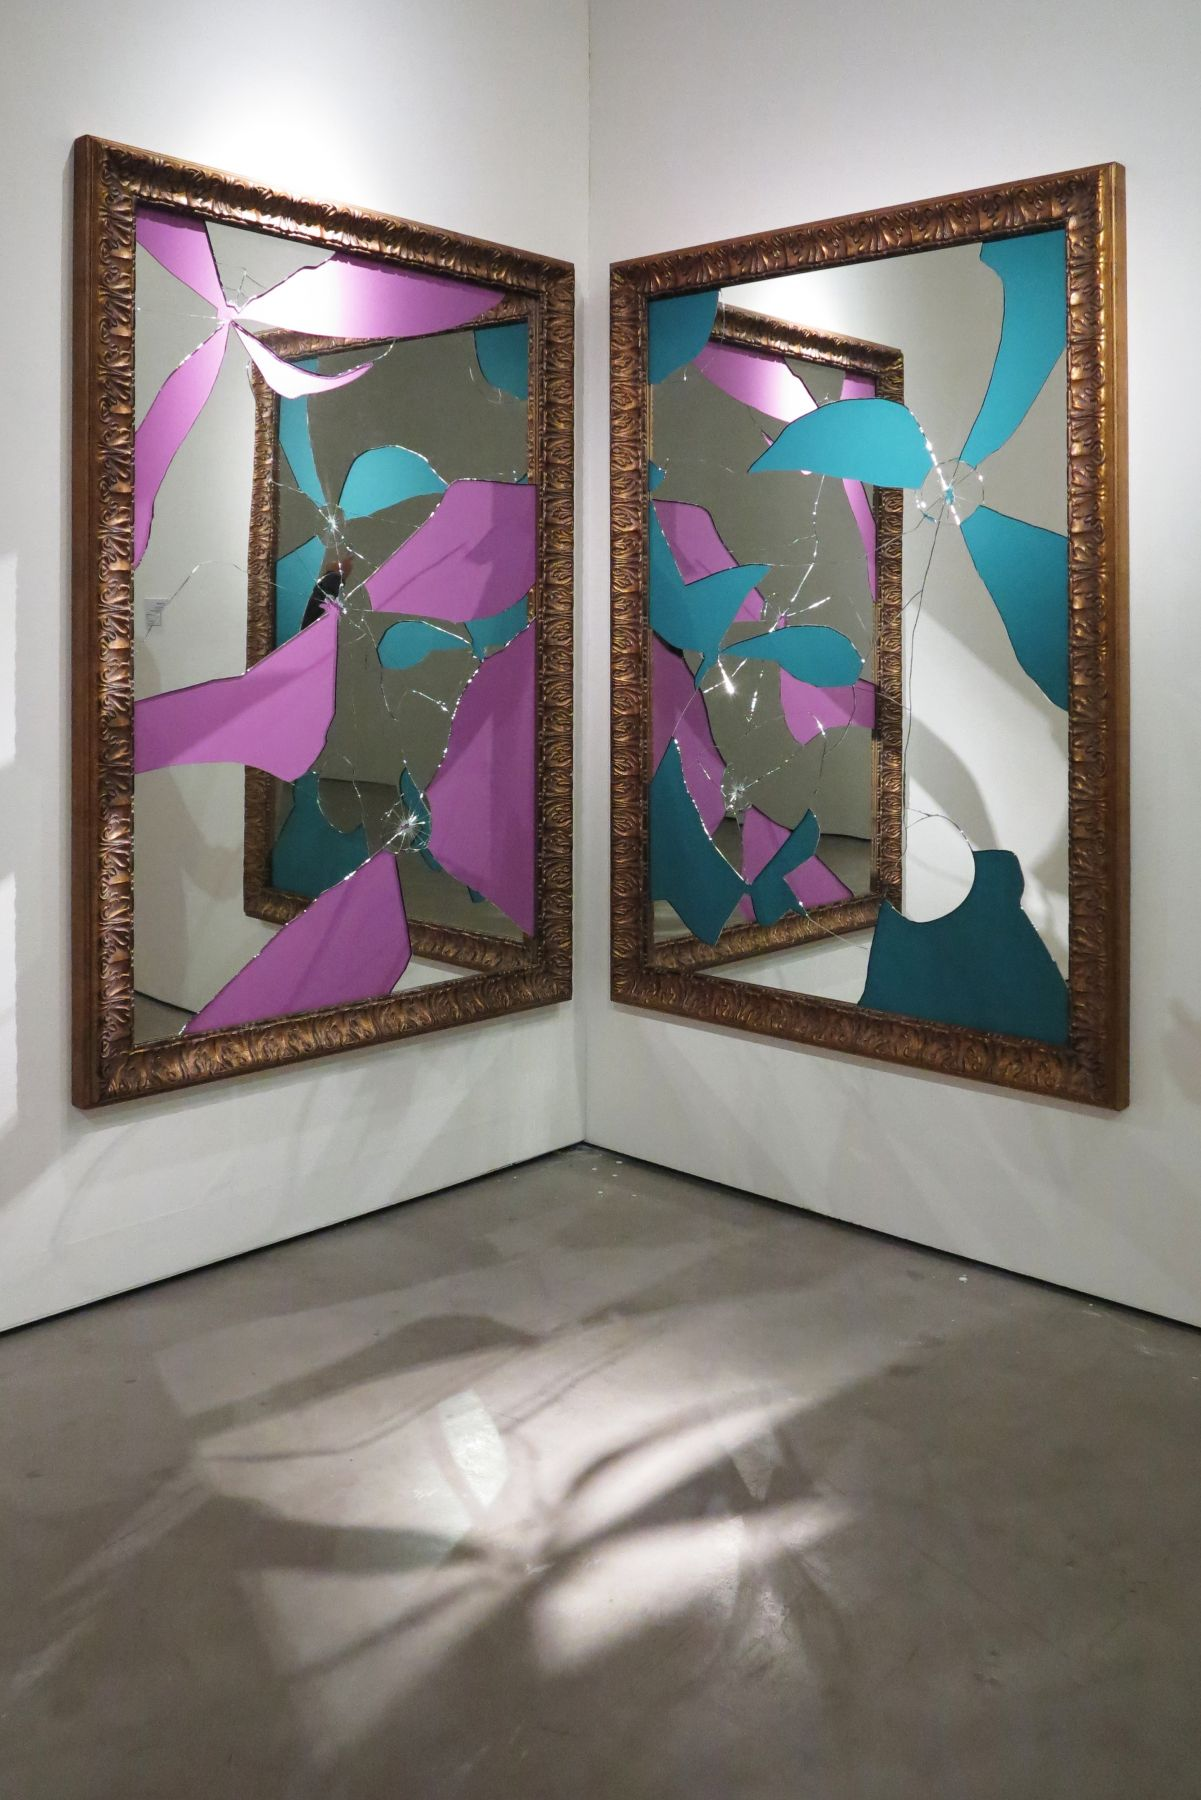 Two Less One colored, 2014, Mirror, gilded wood